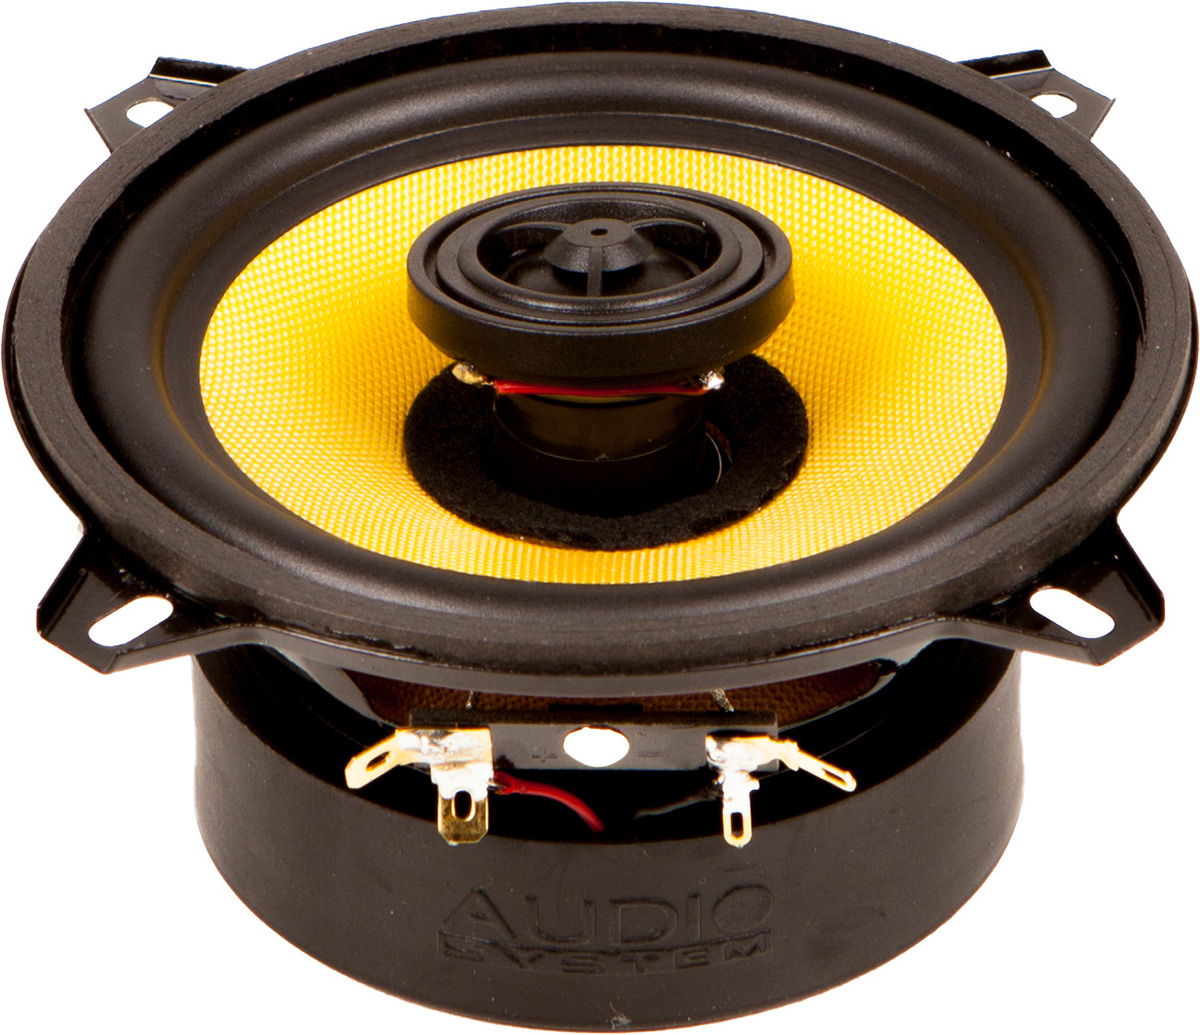 Audio System CO-Series CO-130